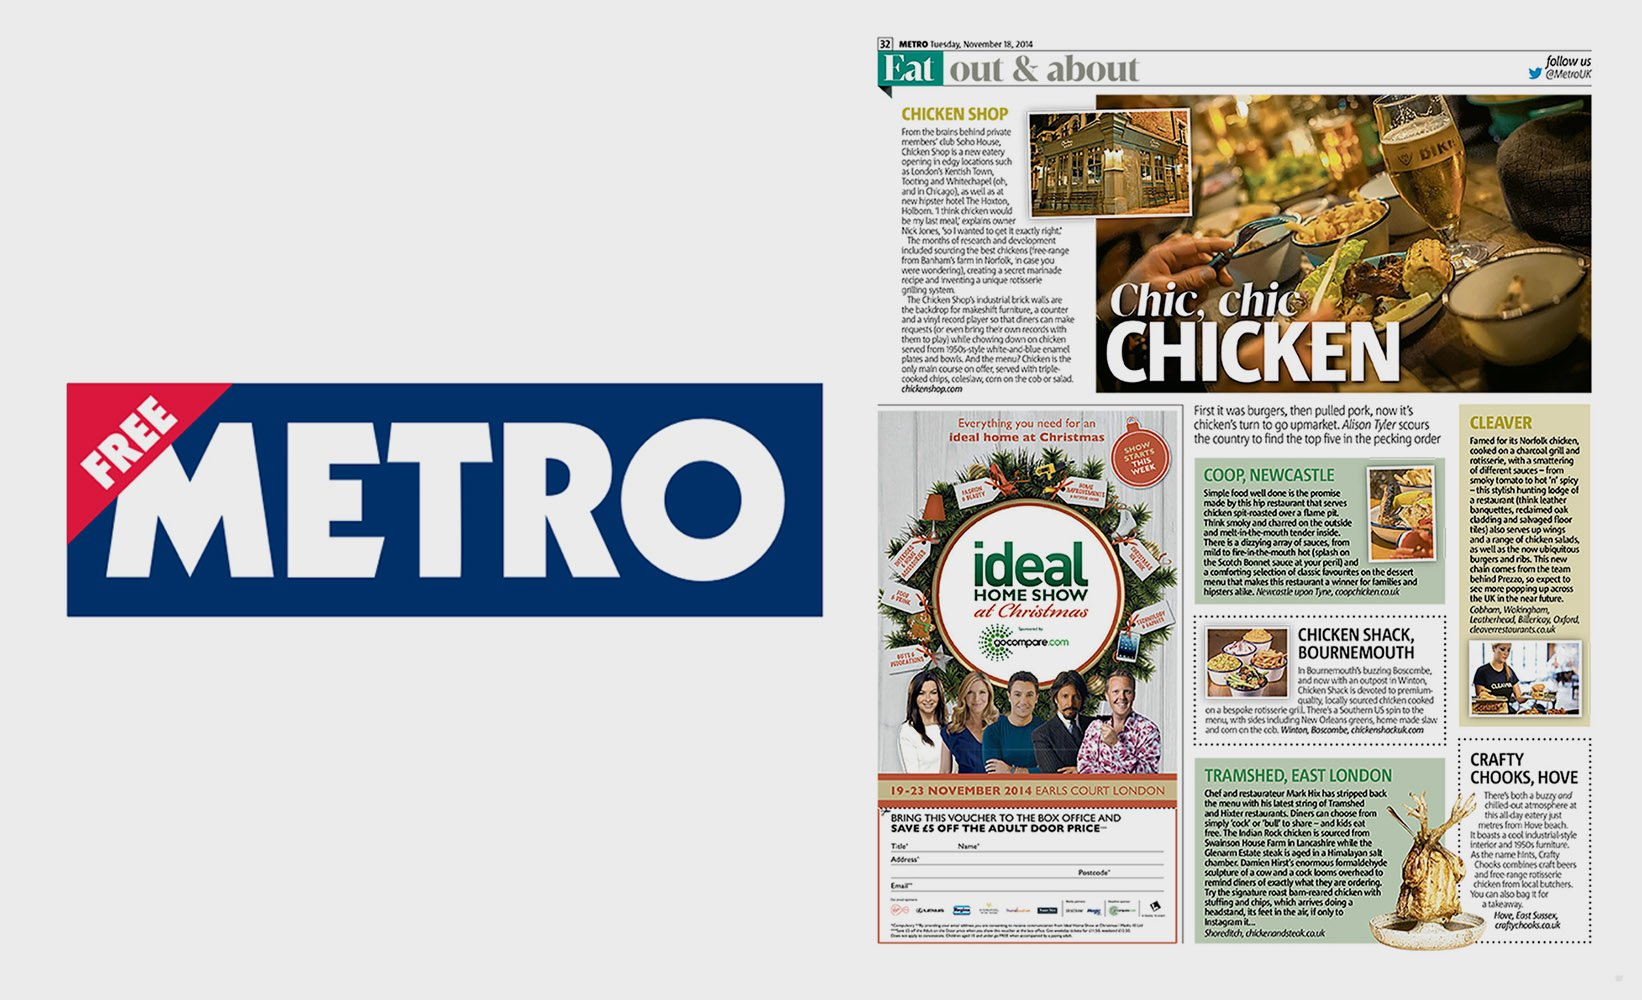 Chicken & Blues: Top 5 in the UK!